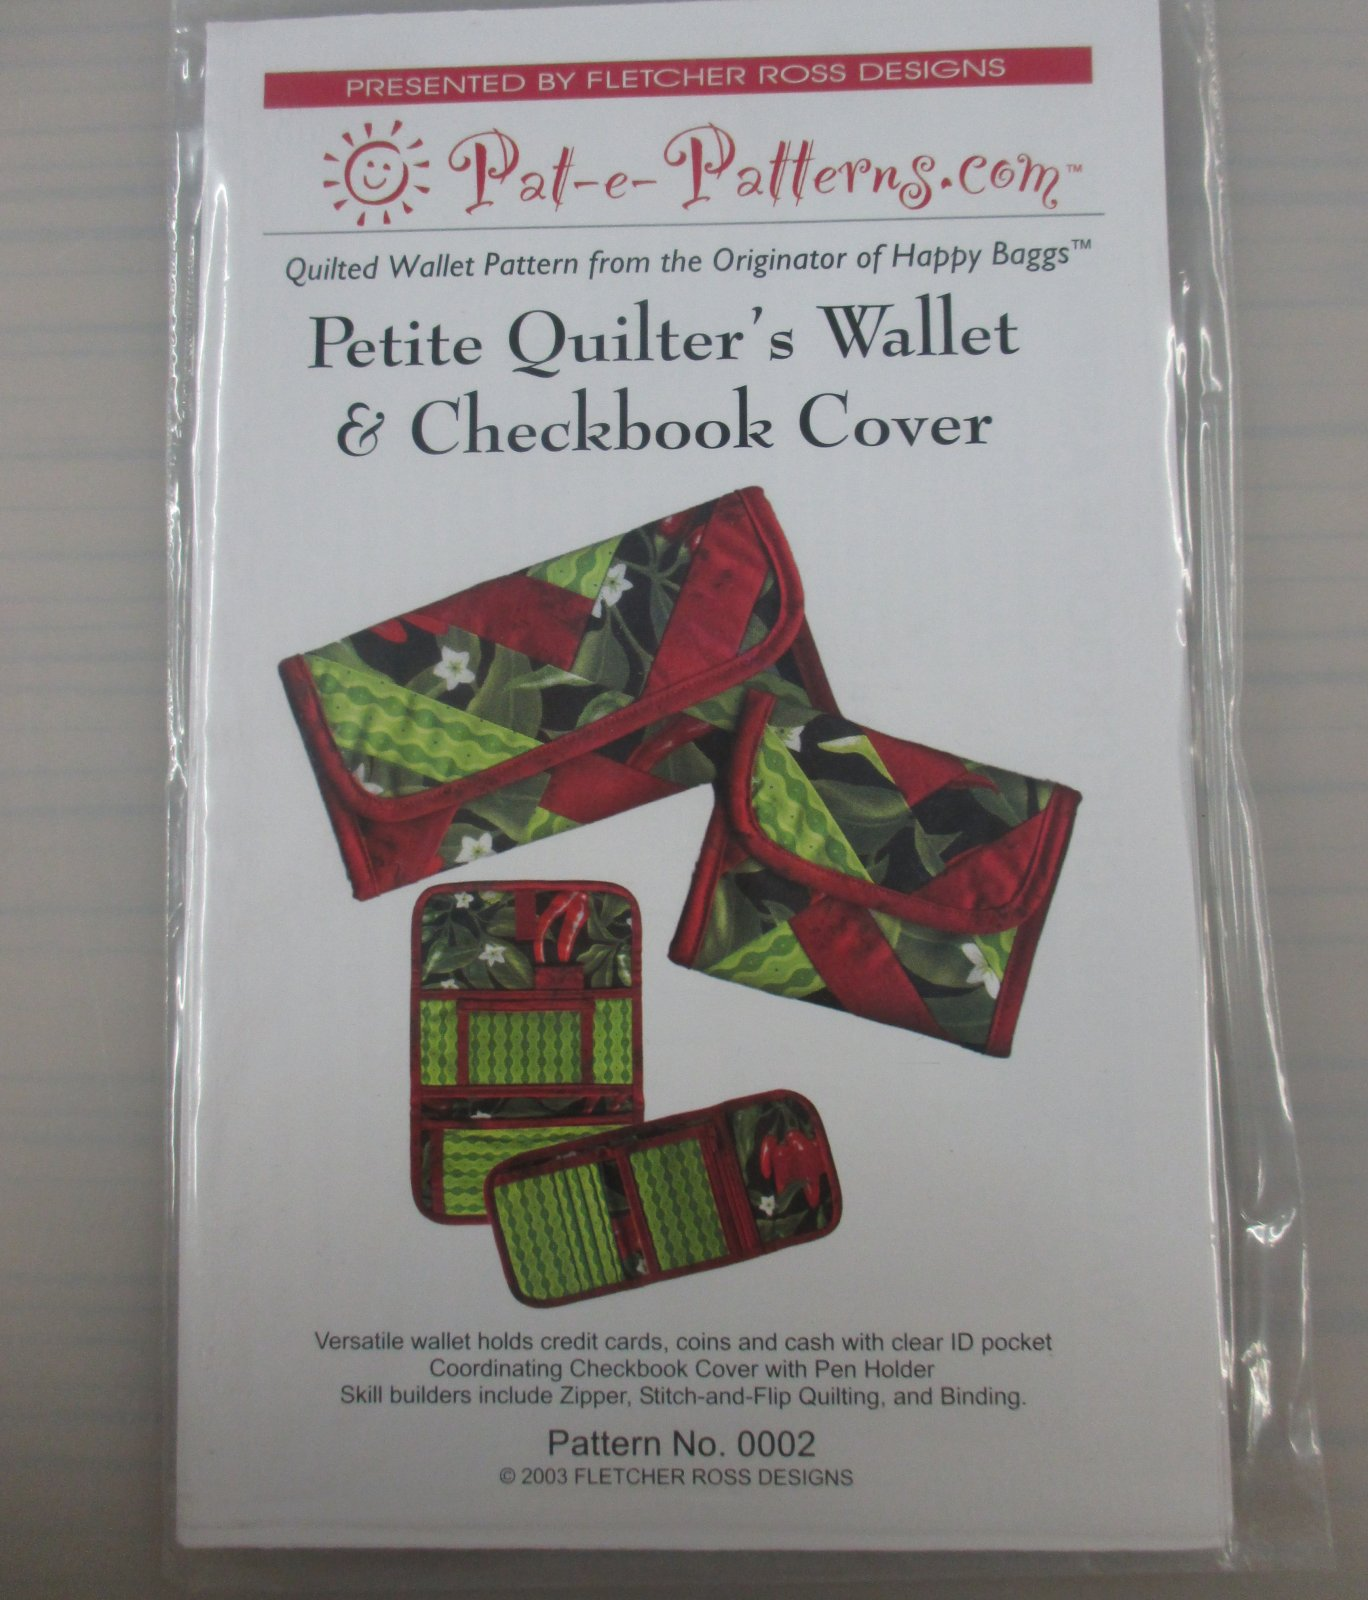 Petite Quilter's Wallet & Checkbook Cover